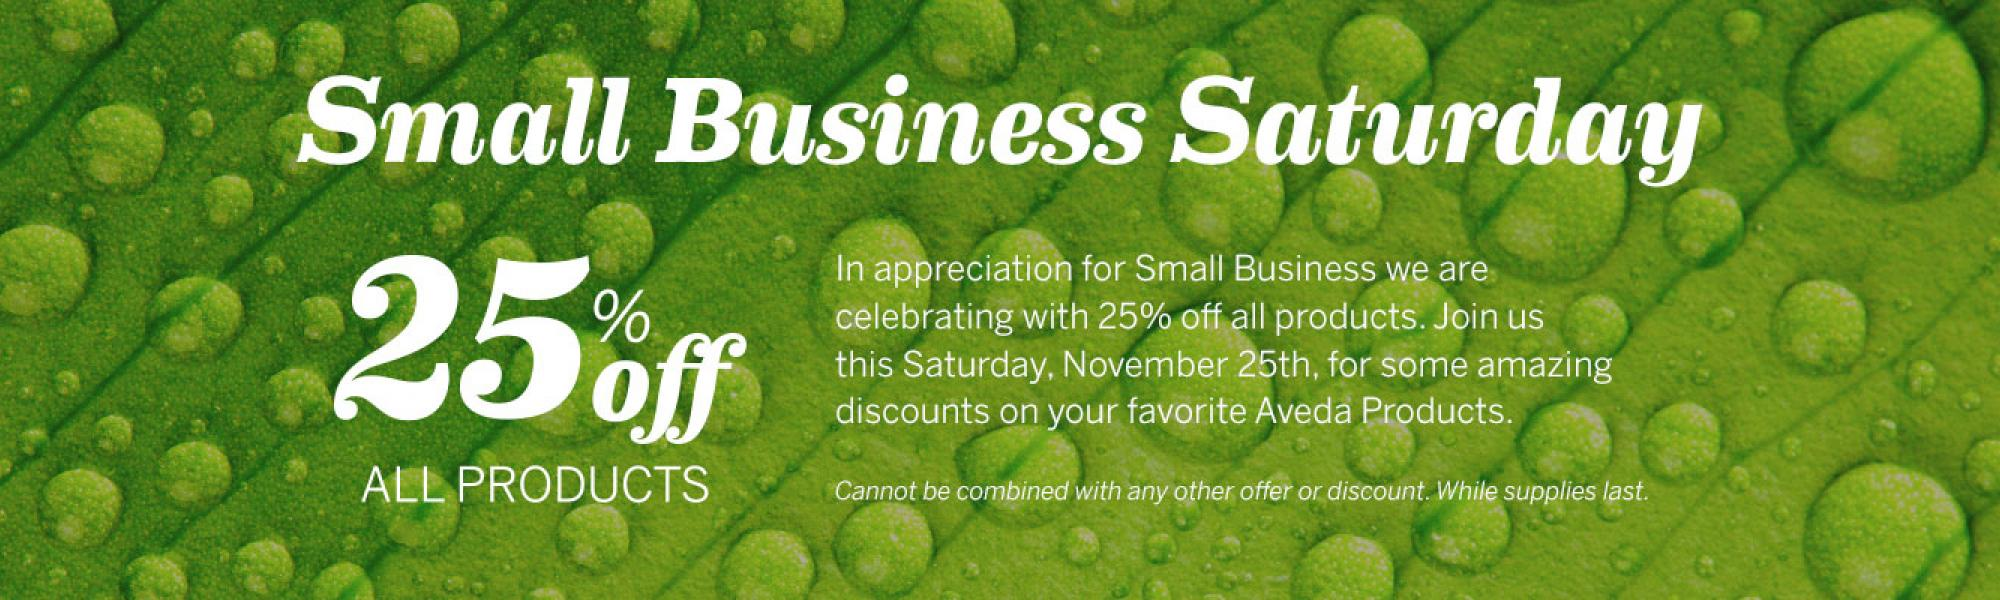 Small Business Saturday, 25% Off Products